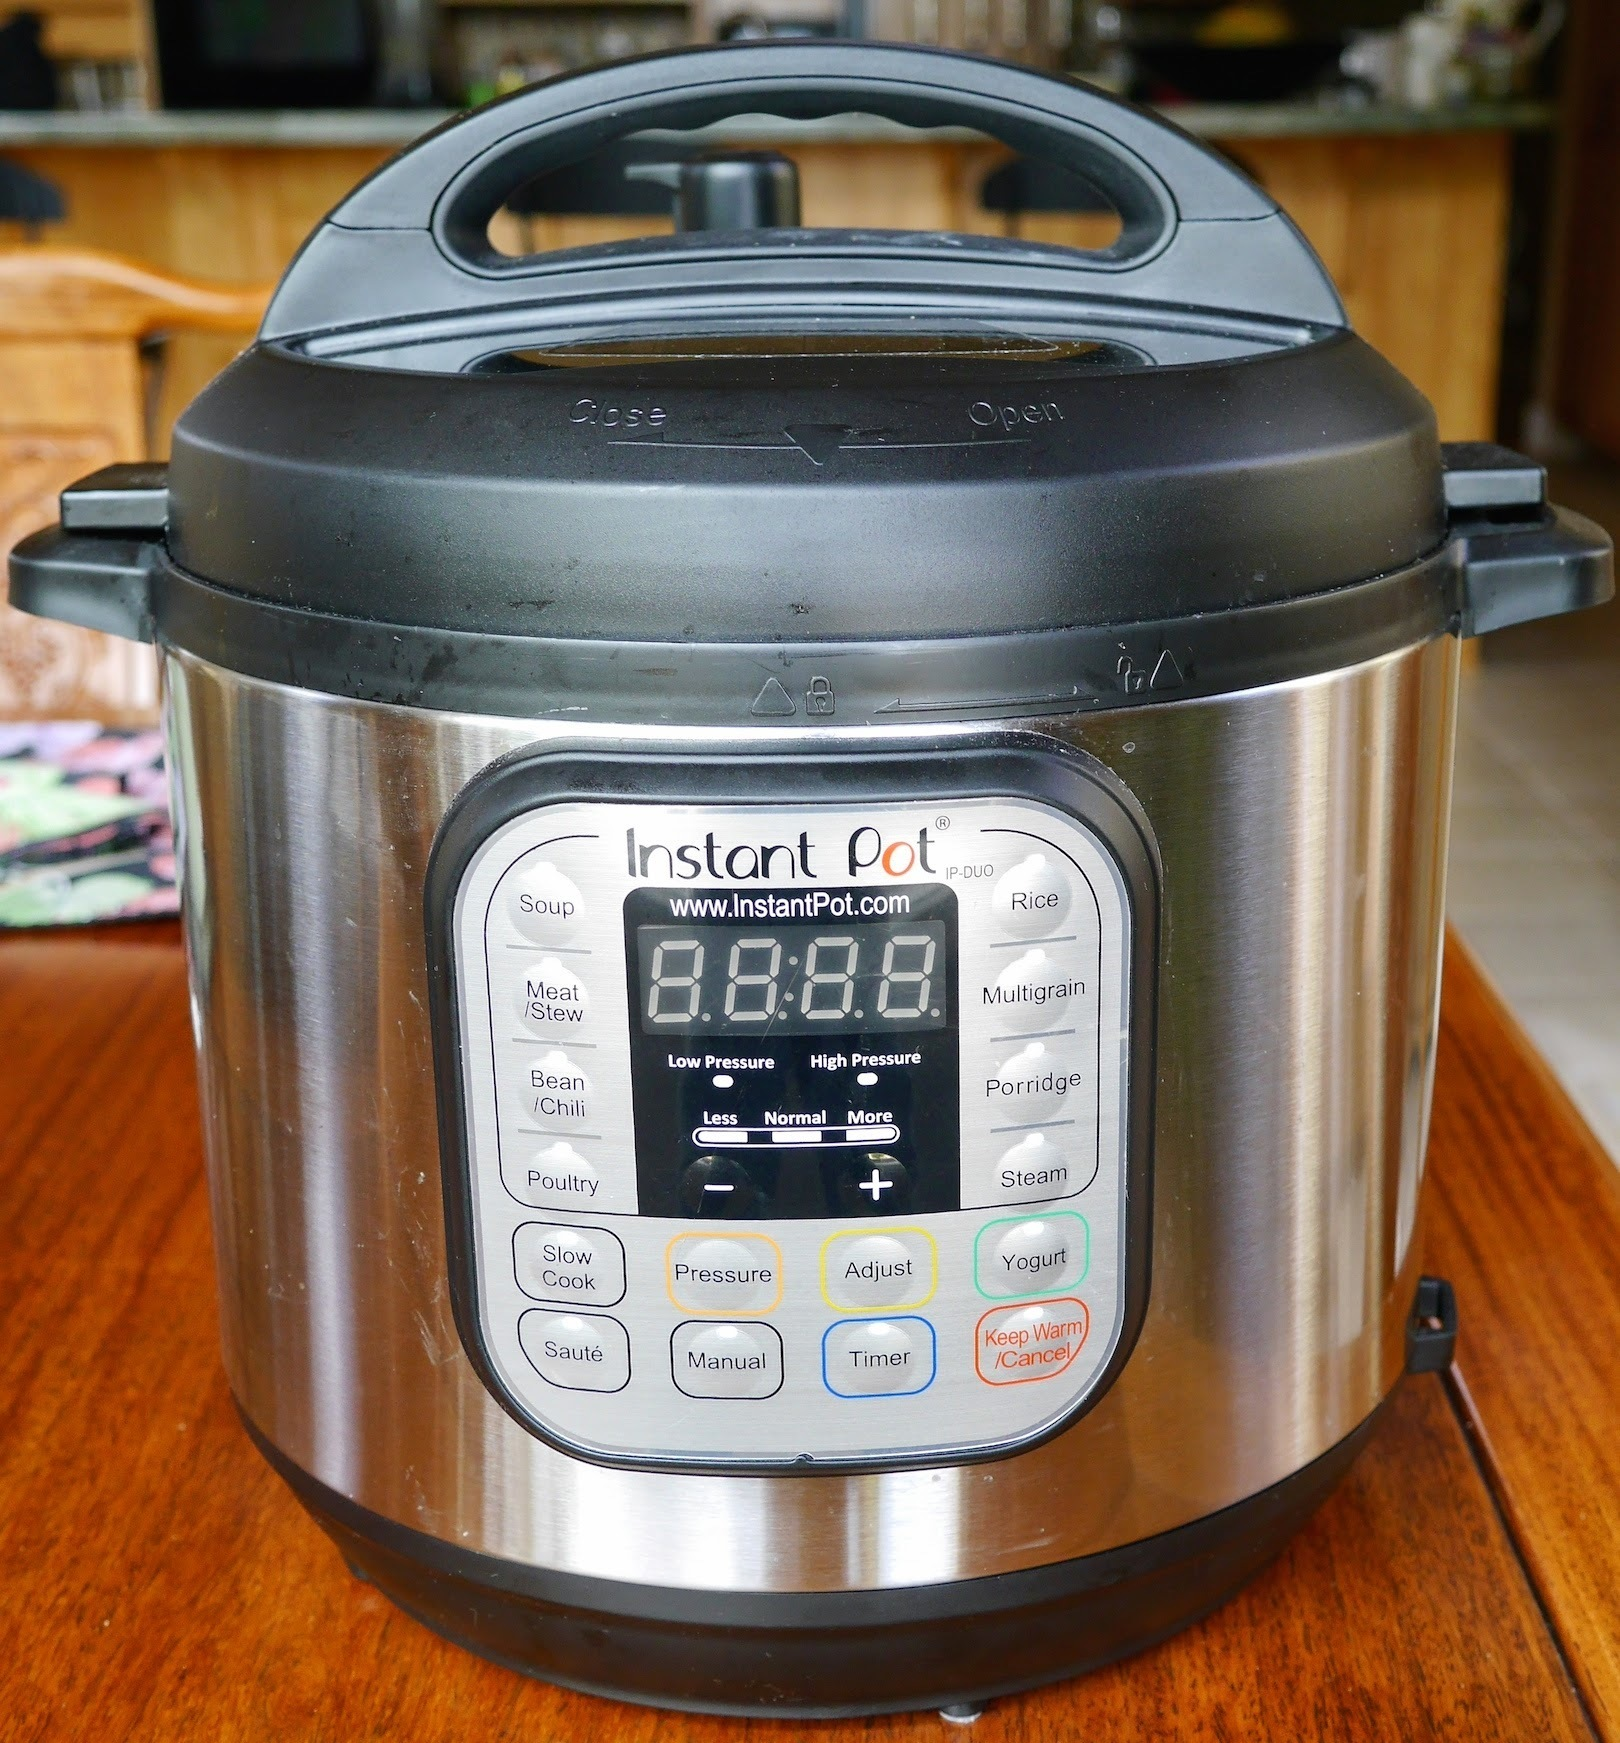 The Amazing Electric Instant Pot New Pressure Cooker TechnologyNo-Stir Risotto In Five Minutes!